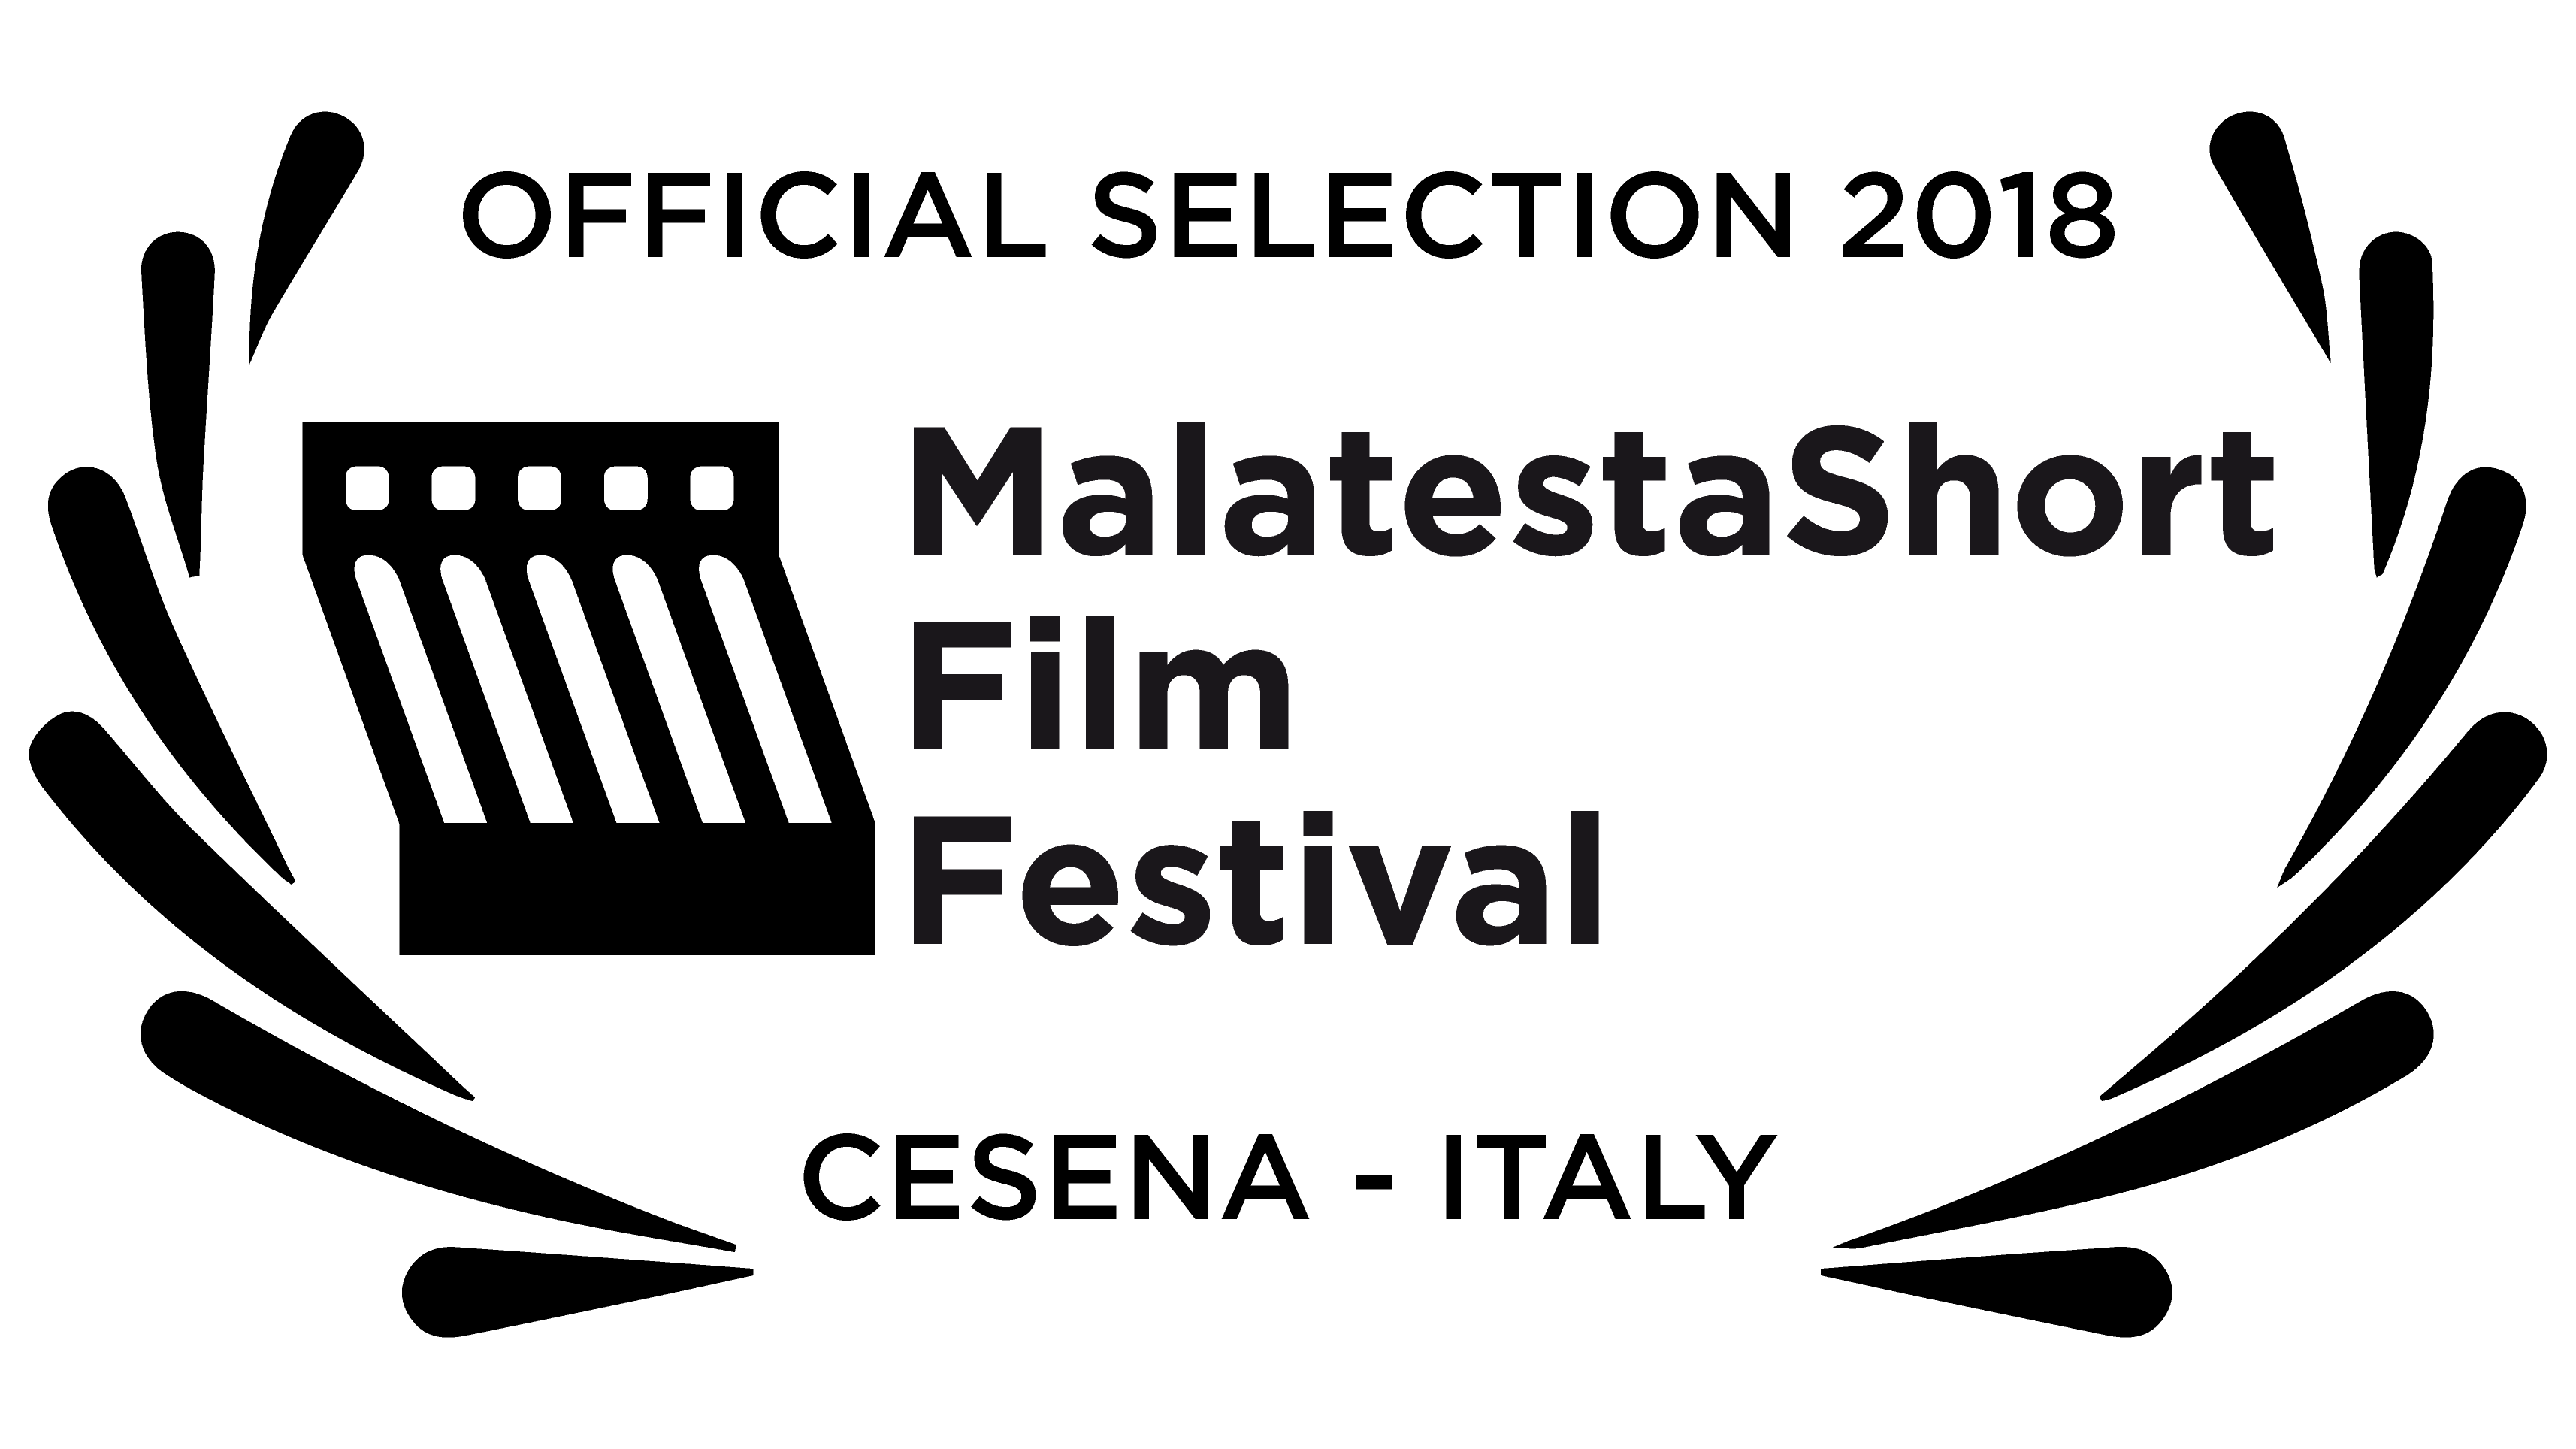 Official-Selection-MSFF-2018-Black1